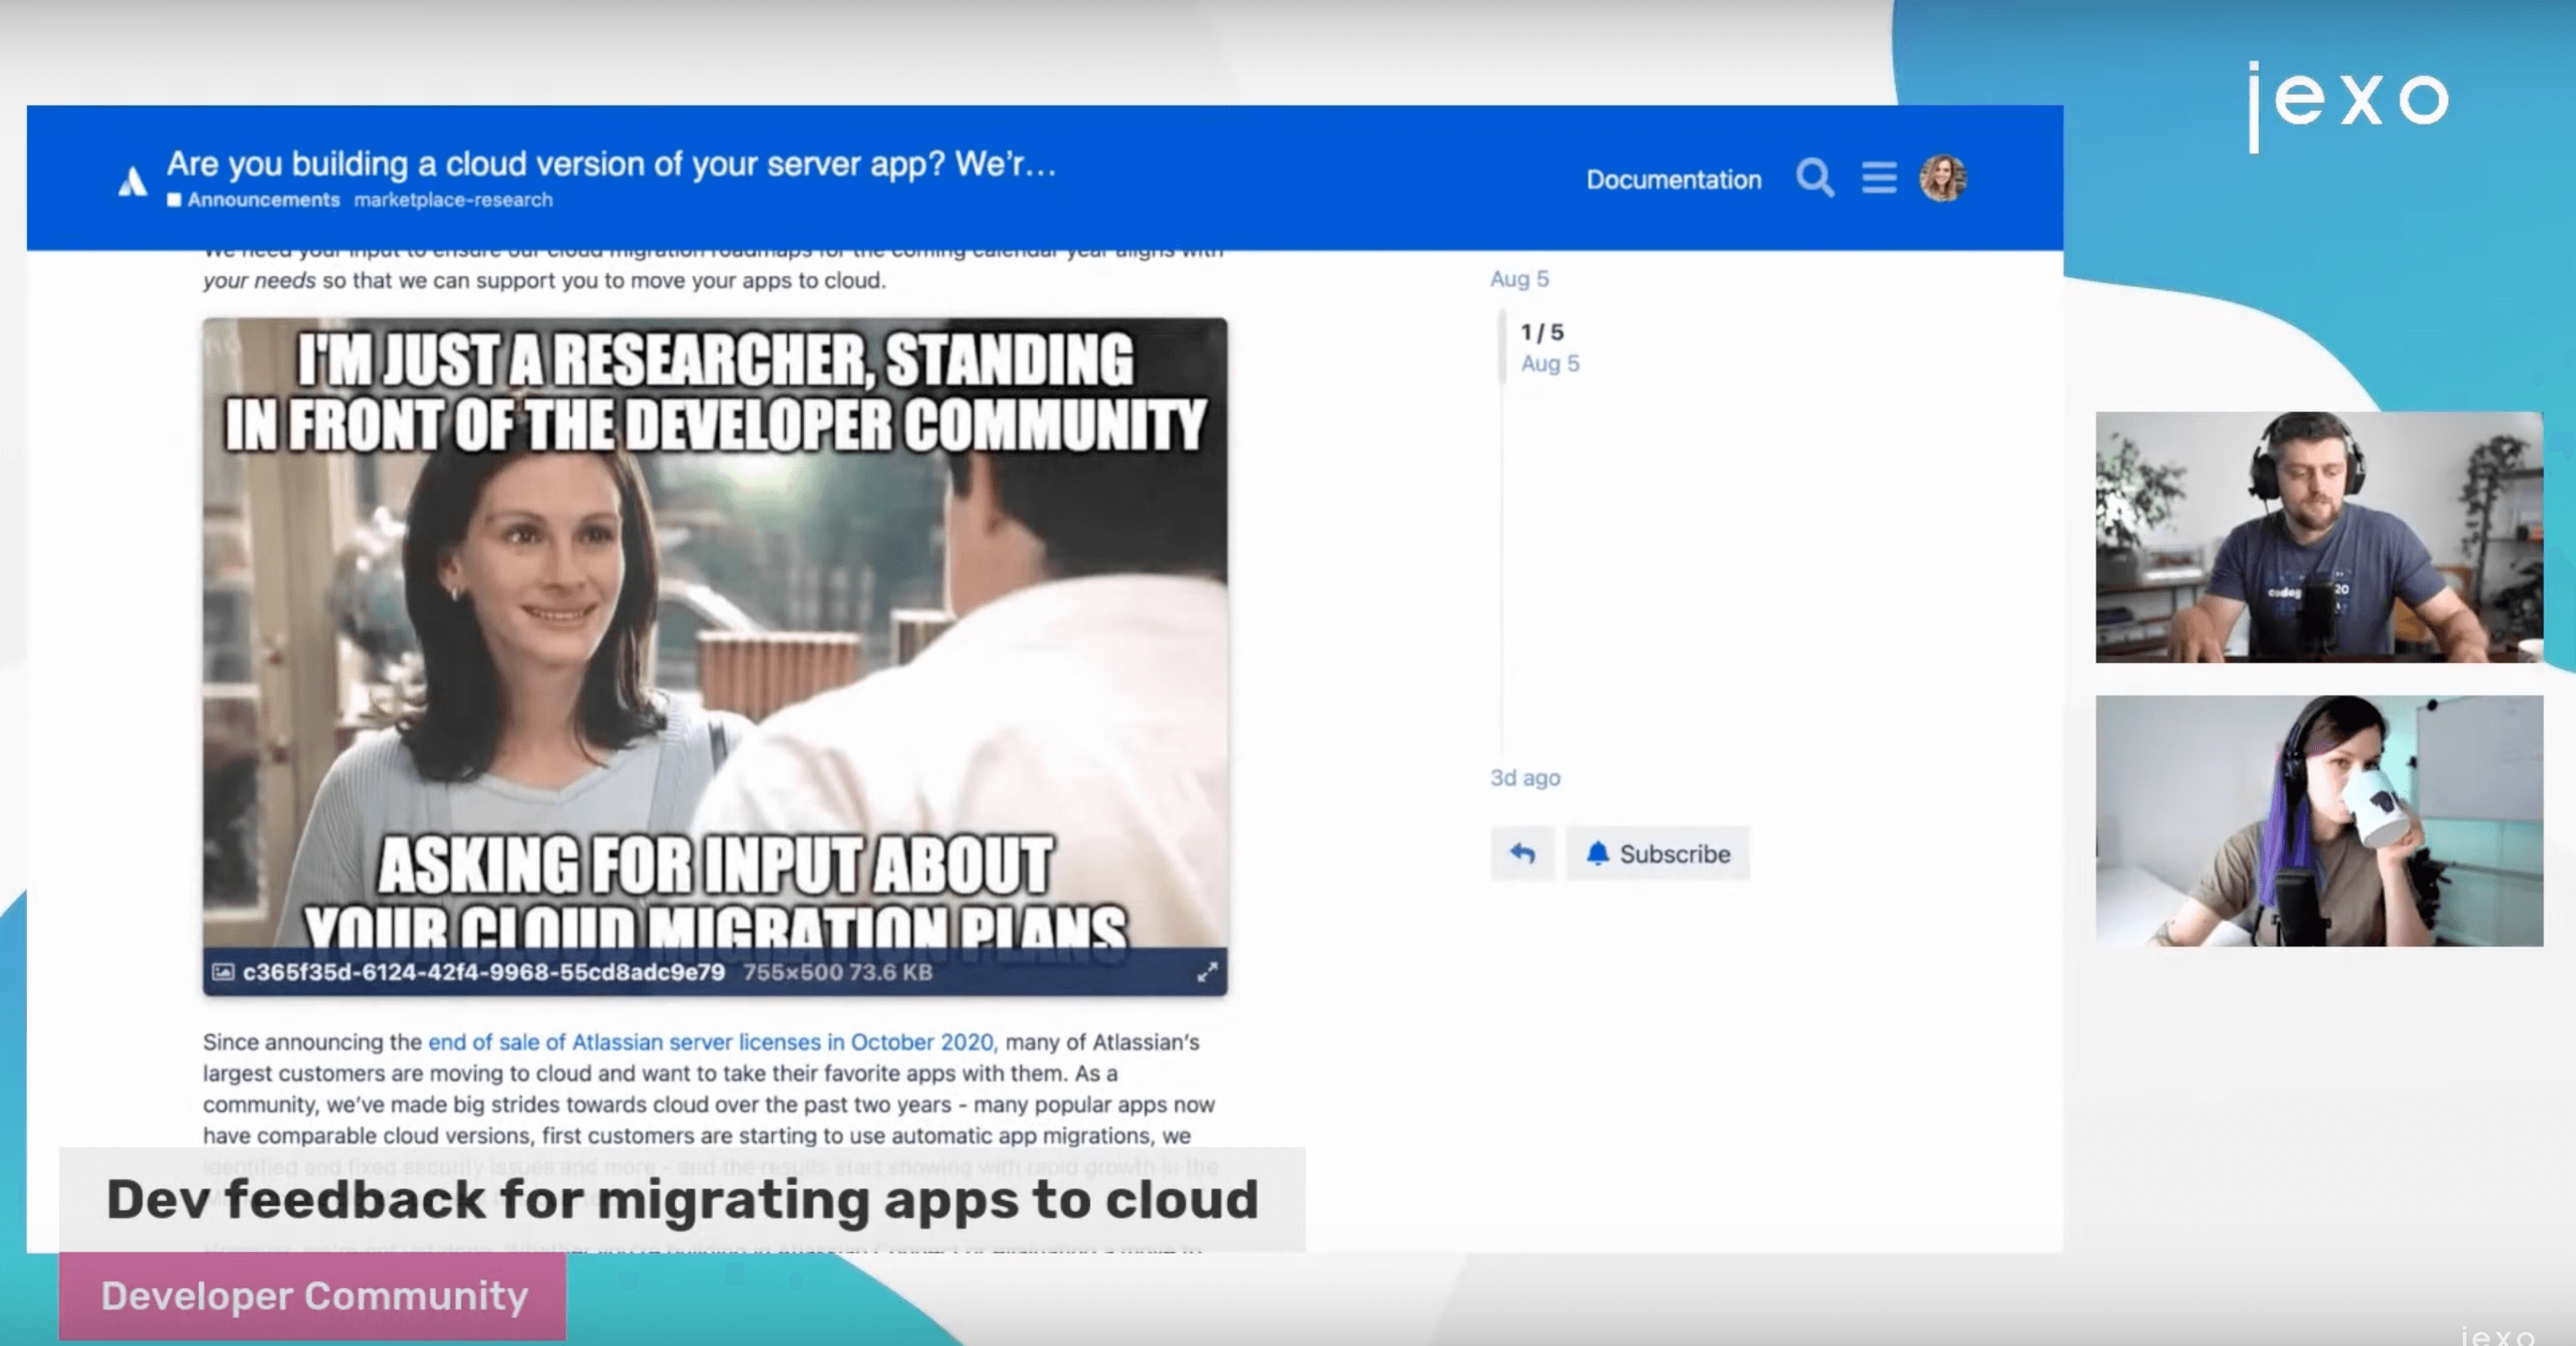 Atlassian News: Dev feedback for migrating apps to cloud